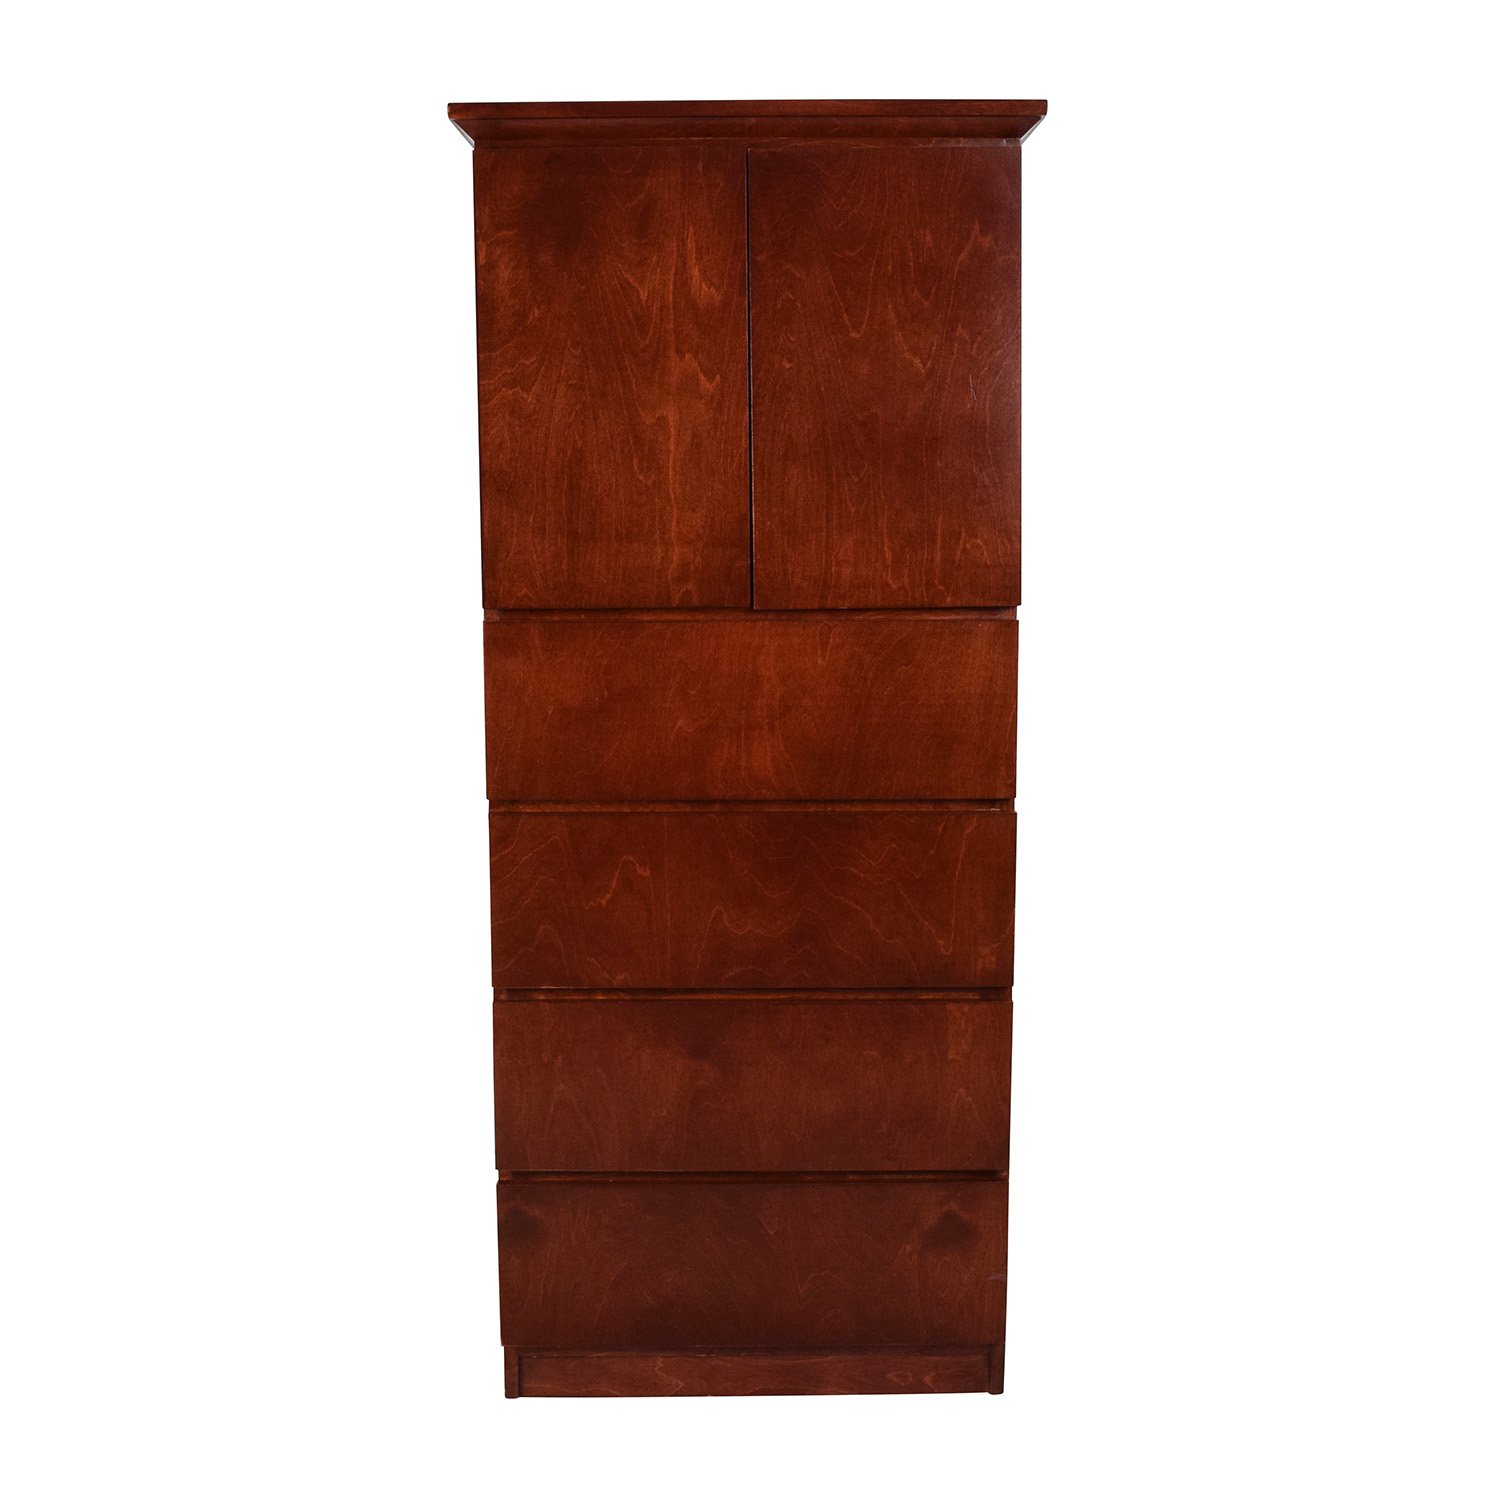 Gothic Furniture Gothic Furniture Mid Century Modern Mini Armoire discount